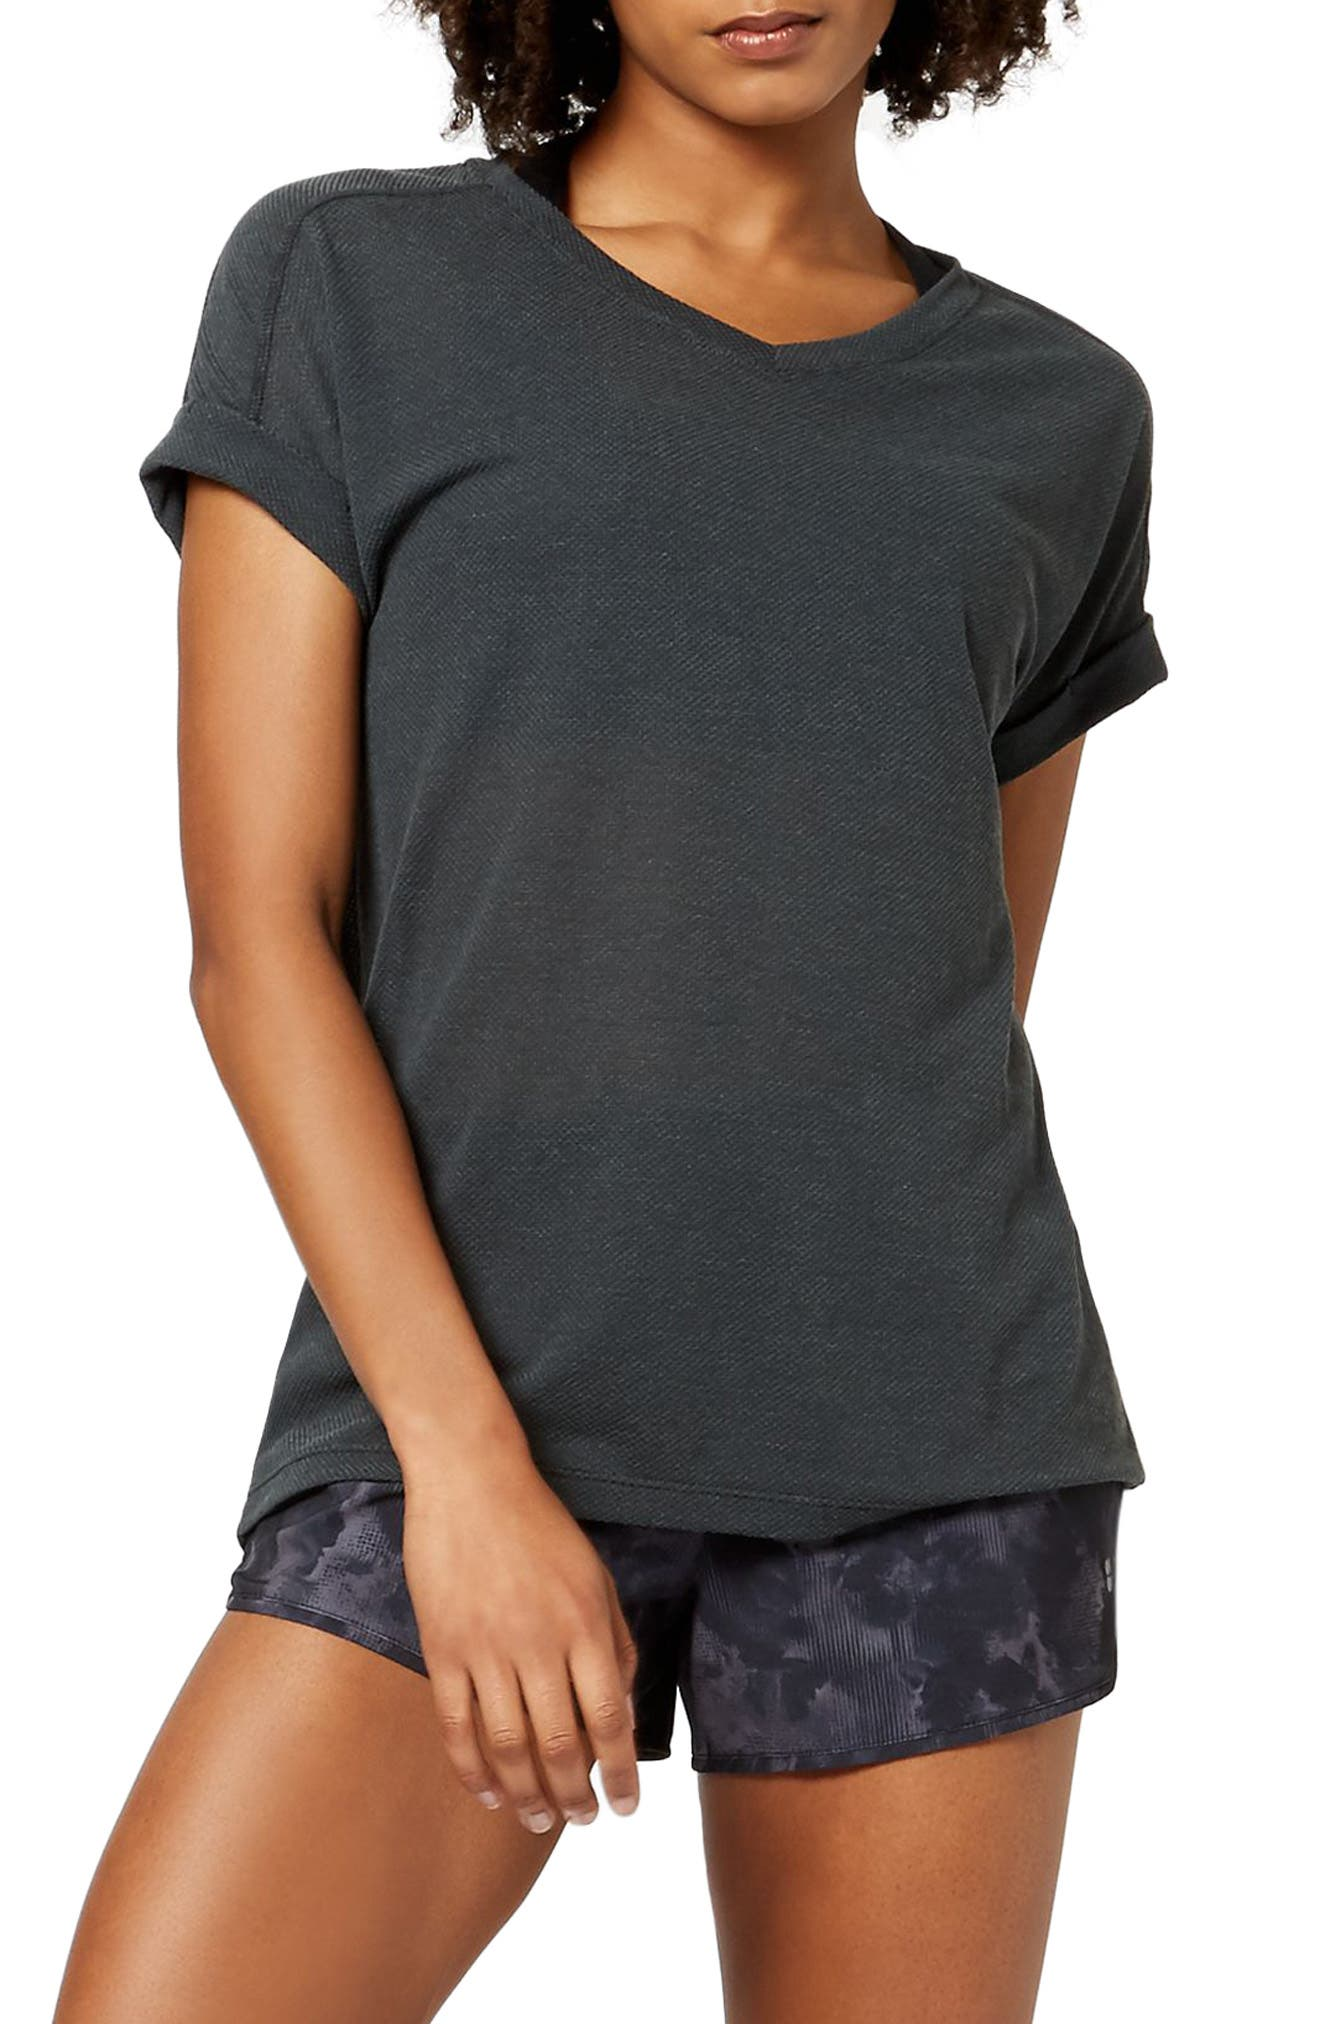 Ab Crunch Tee,                             Main thumbnail 1, color,                             CHARCOAL MARL